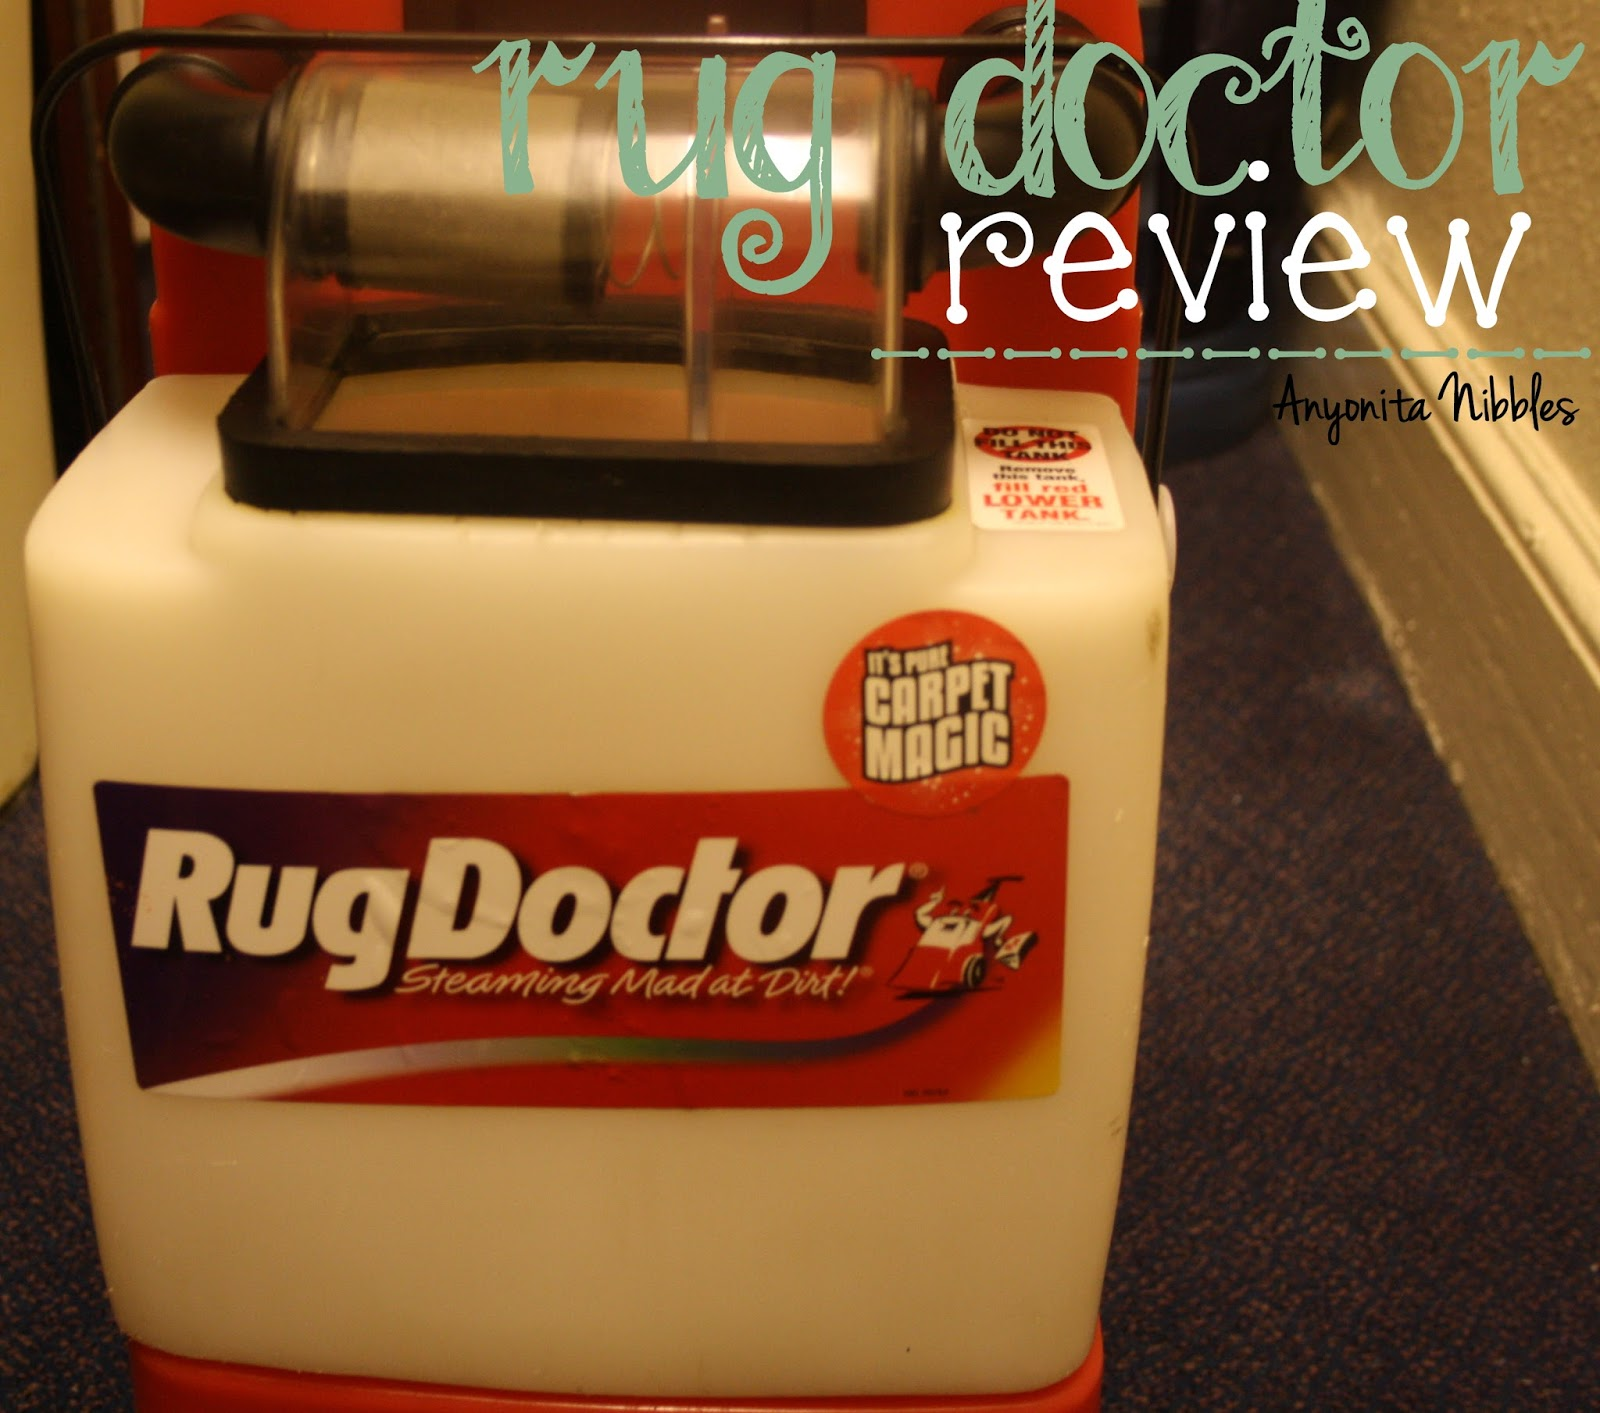 Rug Doctor Review From Www Anyonita Nibbles Com